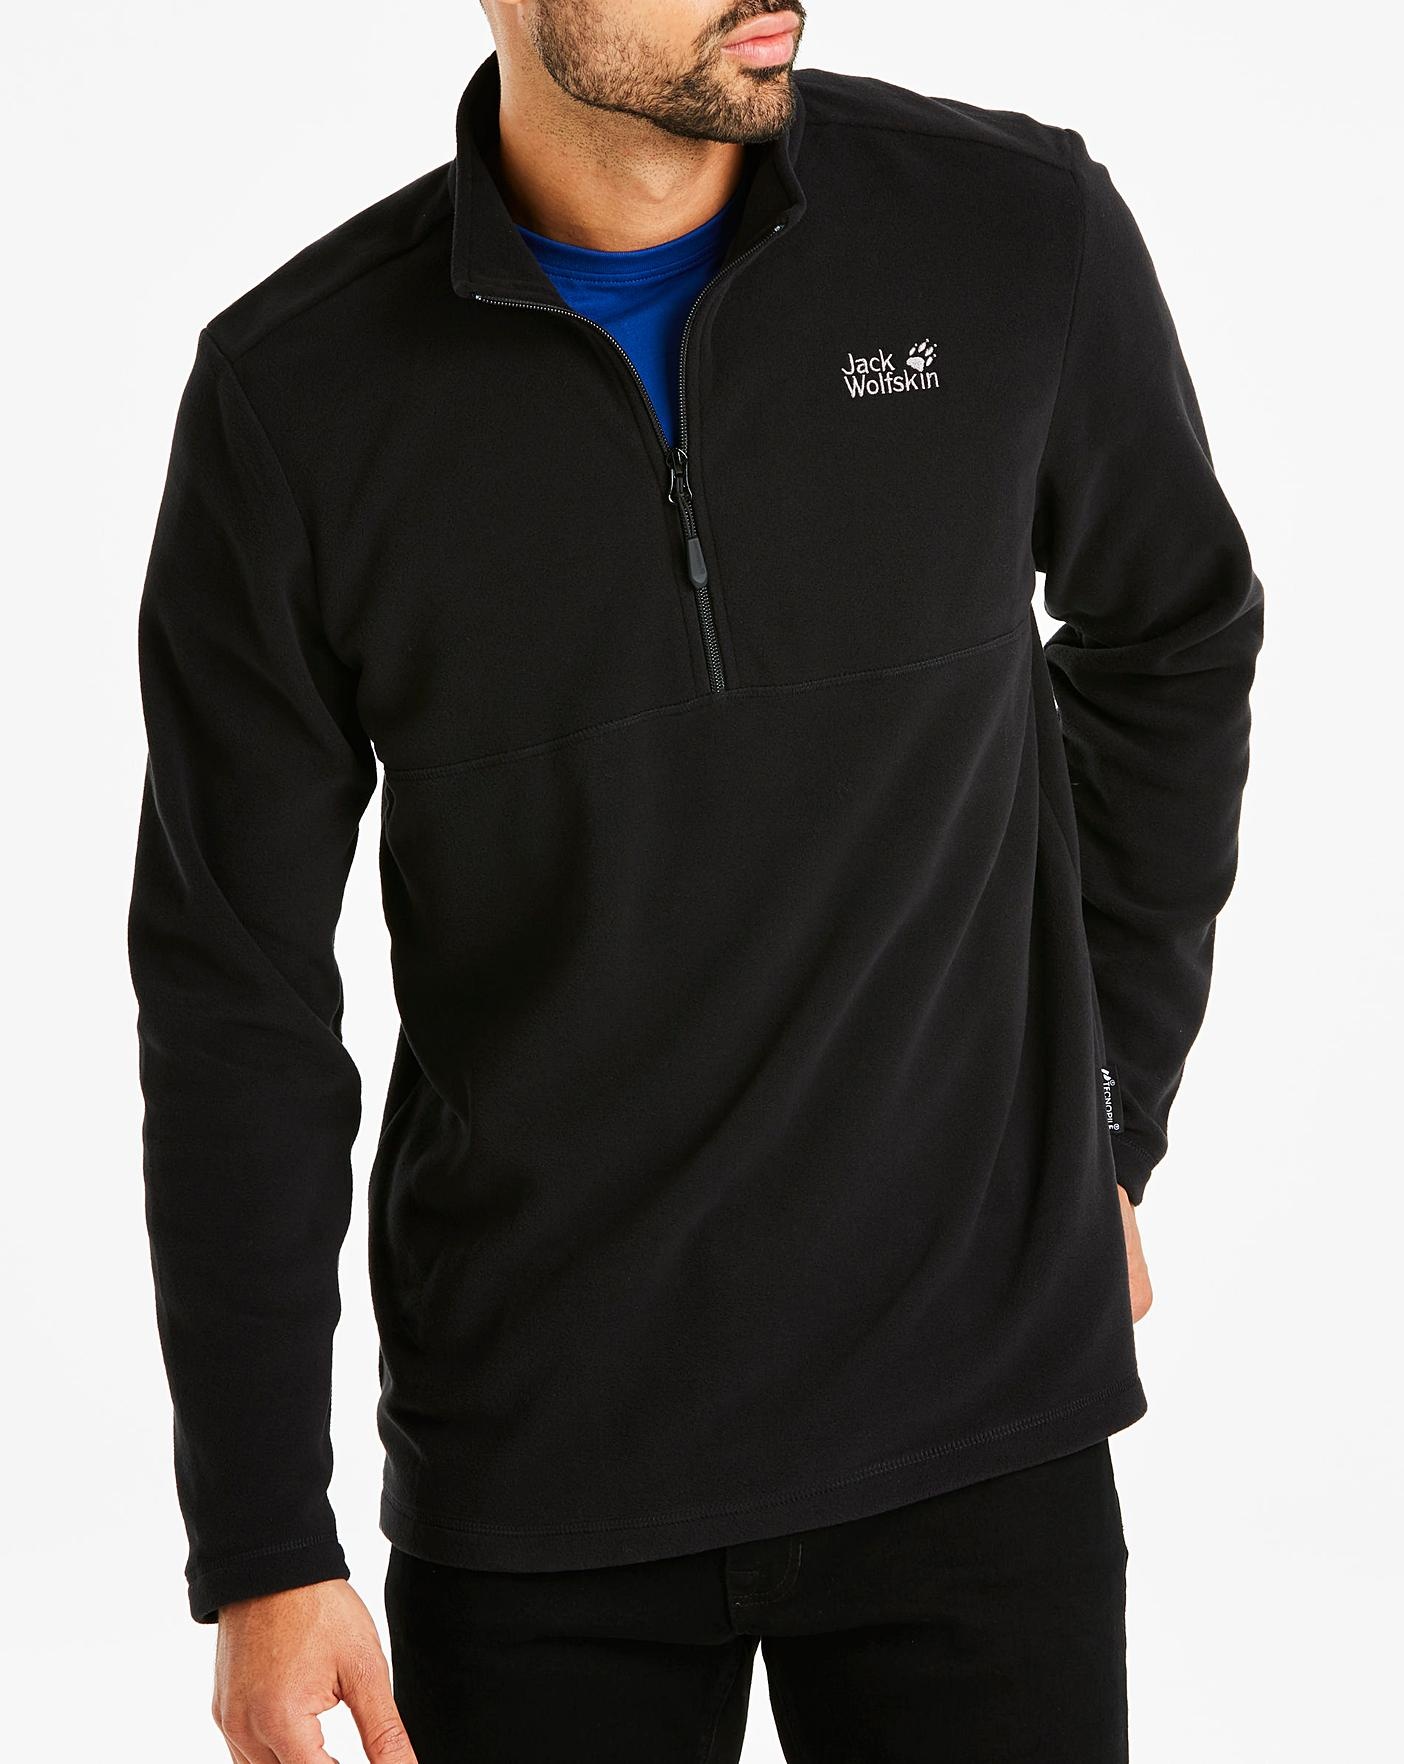 new product 8a9fa a1b30 Jack Wolfskin BlackGecko Fleece Tracktop